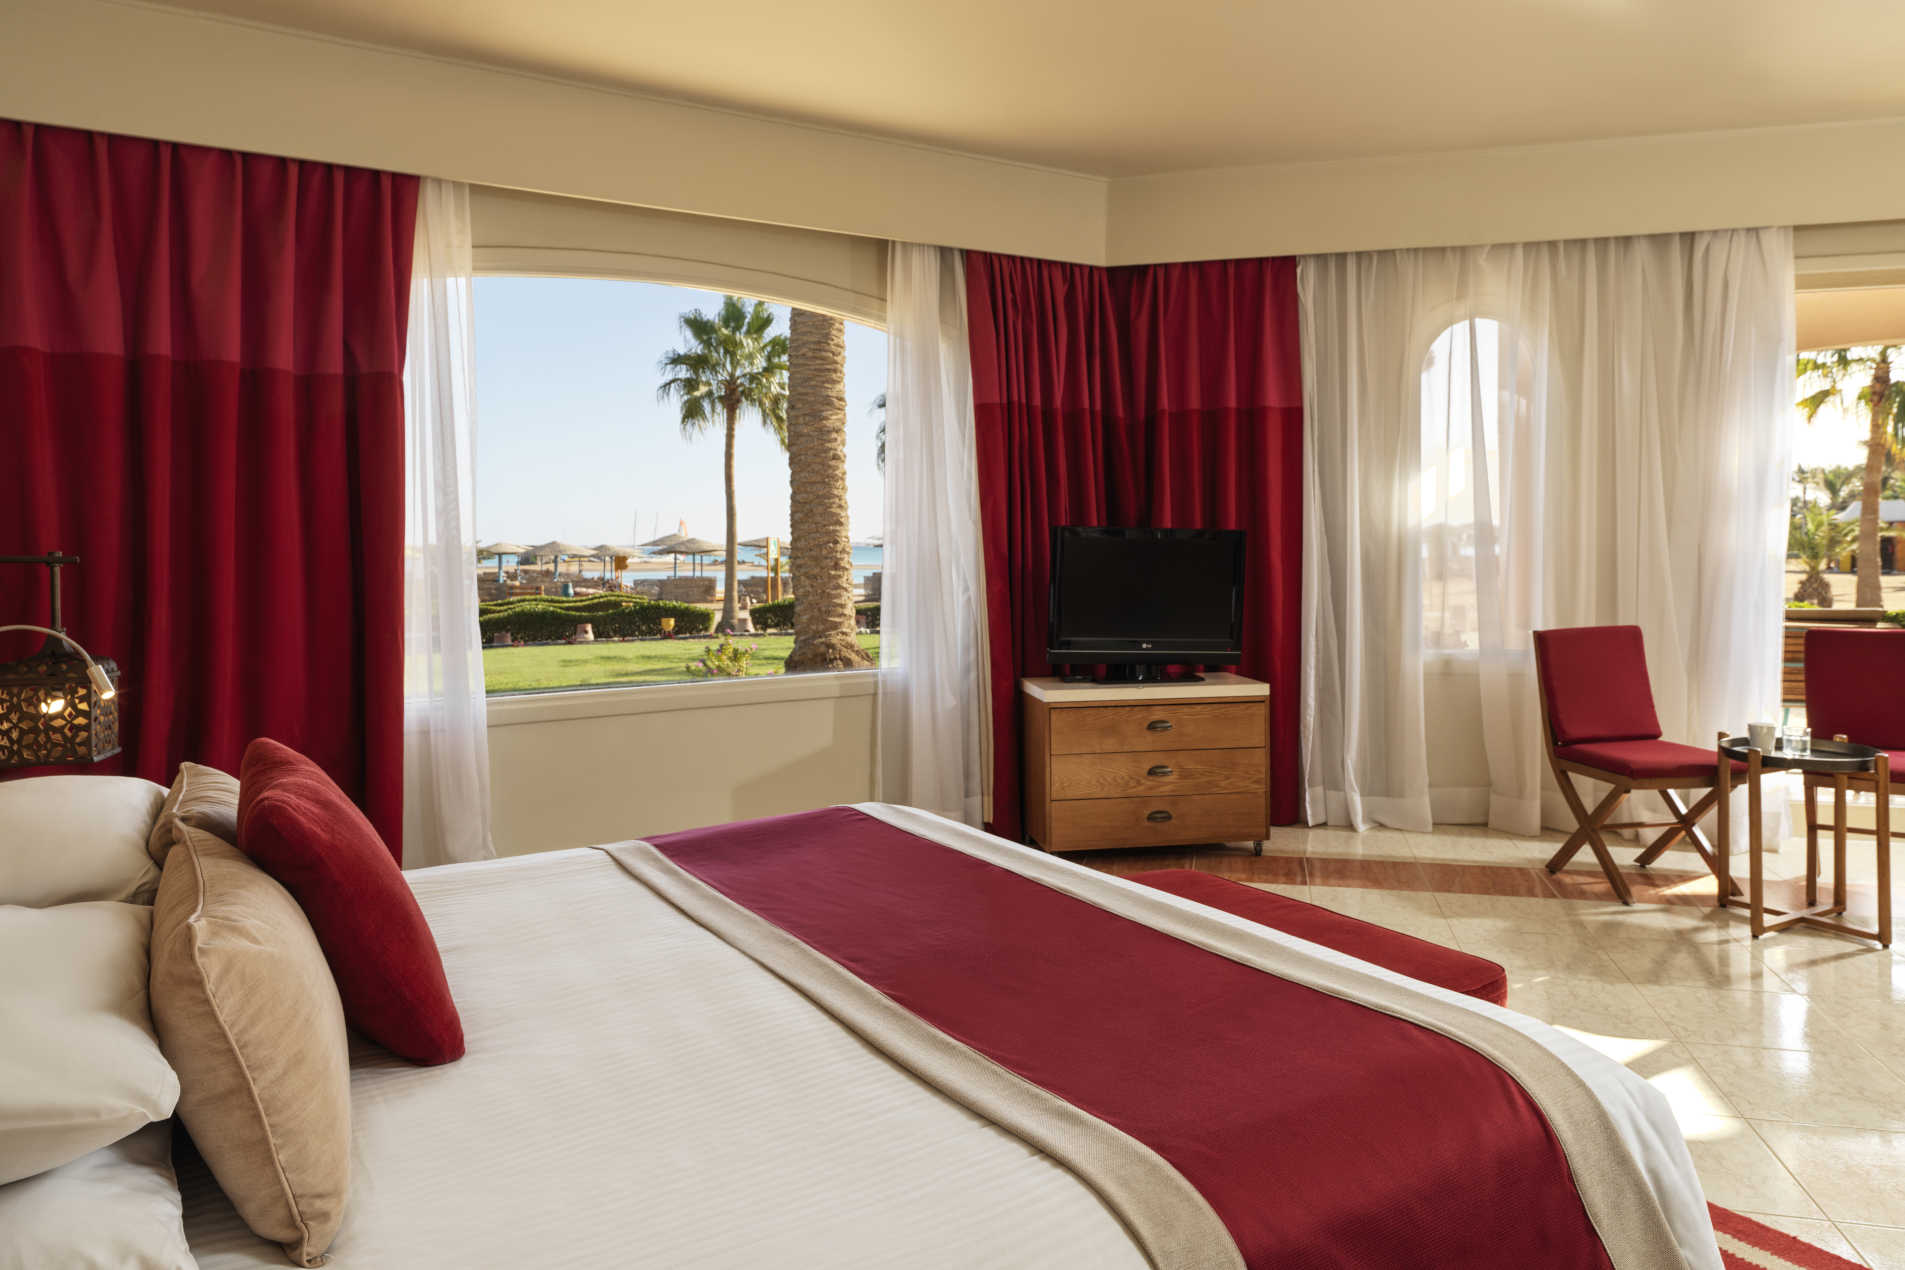 The kingbed of junior suite at Labranda Club Paradisio Hotel in El Gouna in a red theme and overlooking Red Sea waters and hotel gardens